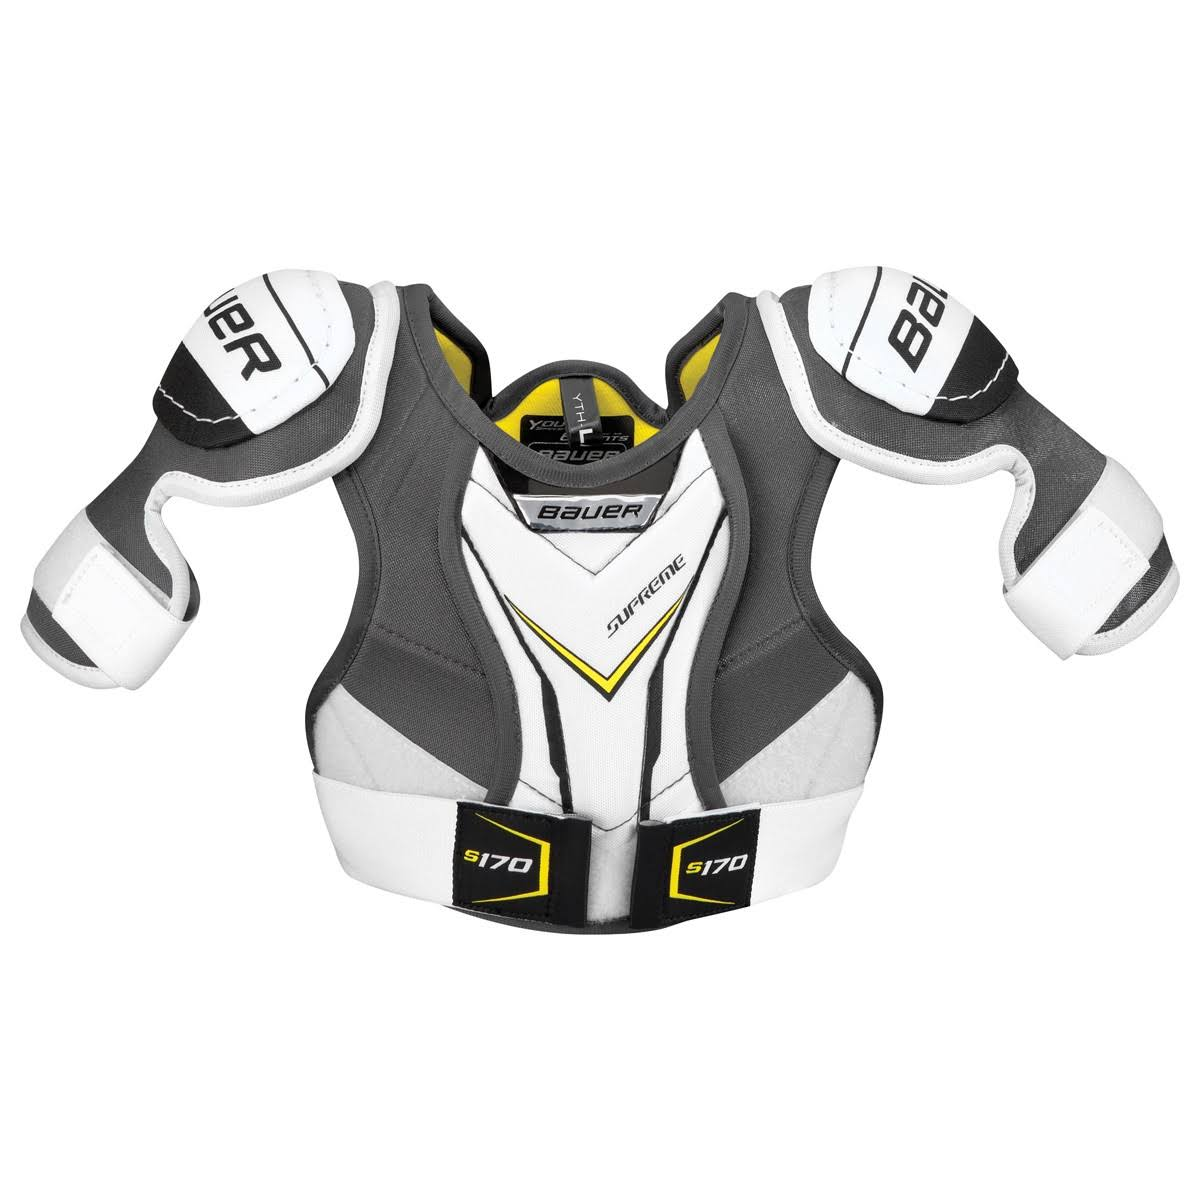 Bauer Youth Supreme S170 Ice Hockey Shoulder Pads - Large